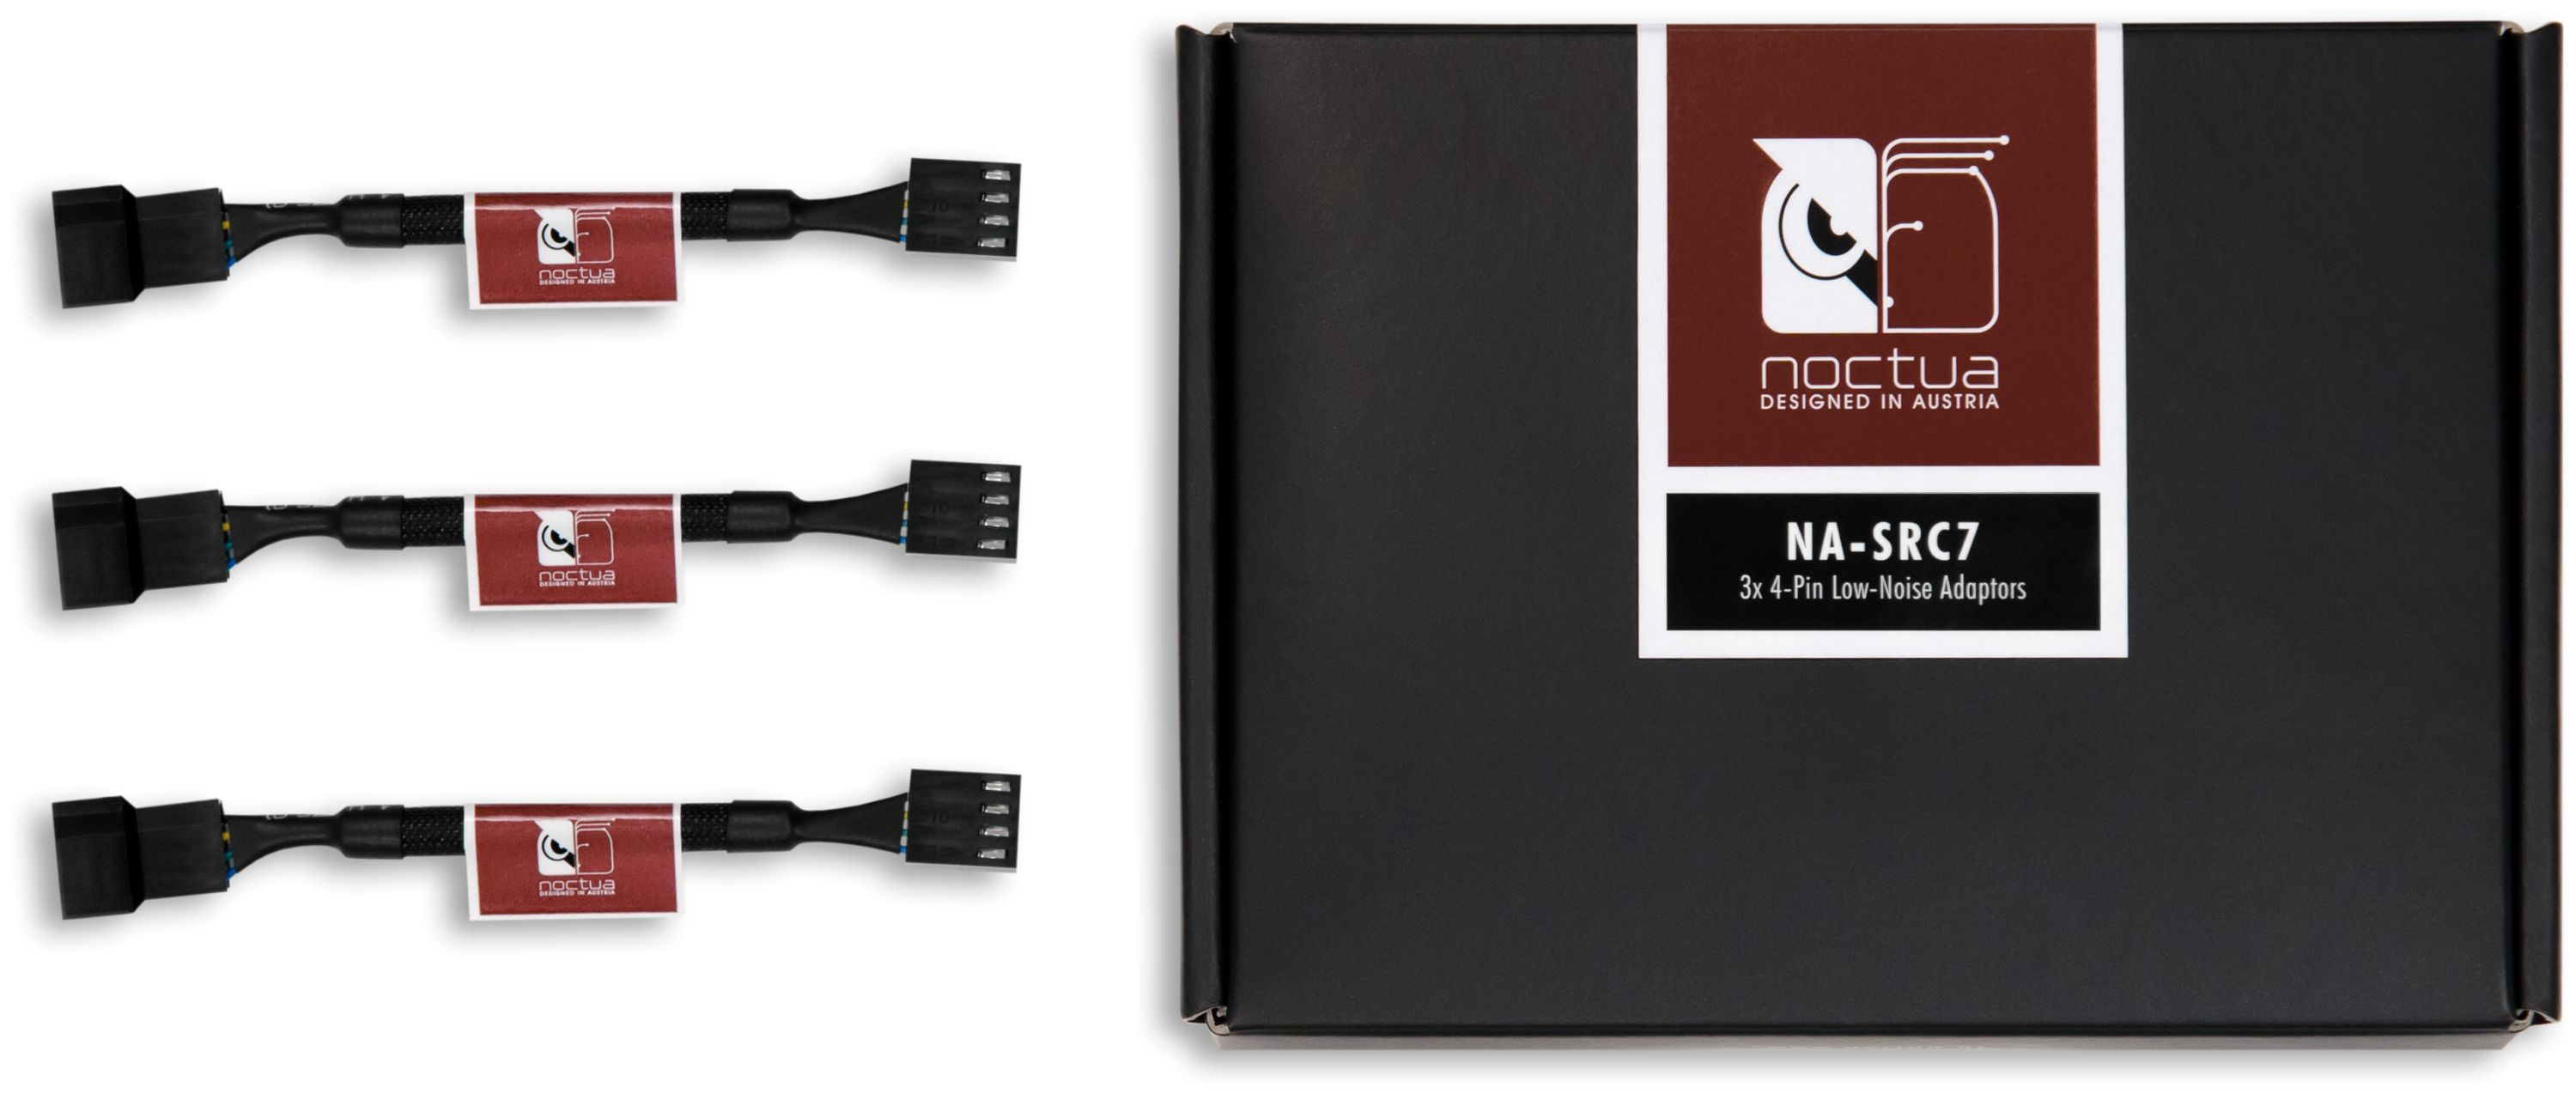 Na Src7 4 Pin Pwm Low Noise Adaptors 3 Pack